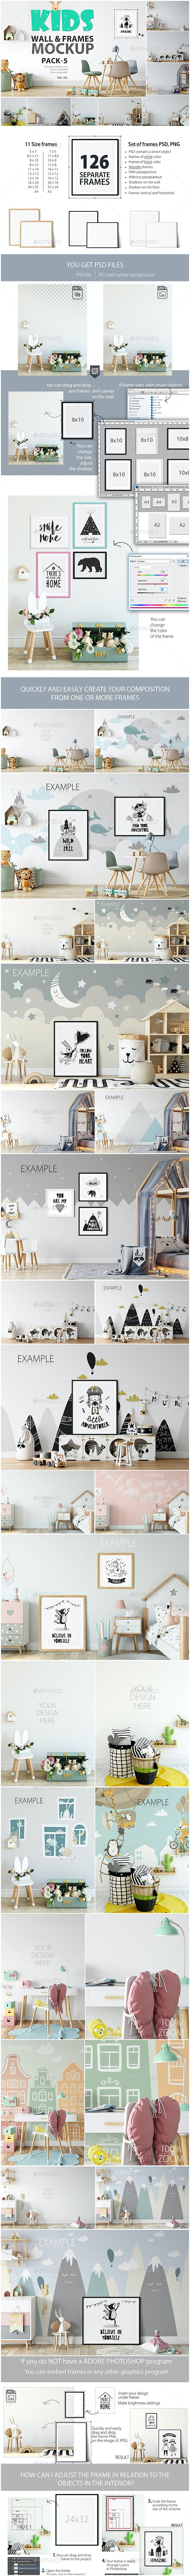 Kids Frames & Wall Mockup Pack - 5 - Product Mock-Ups Graphics